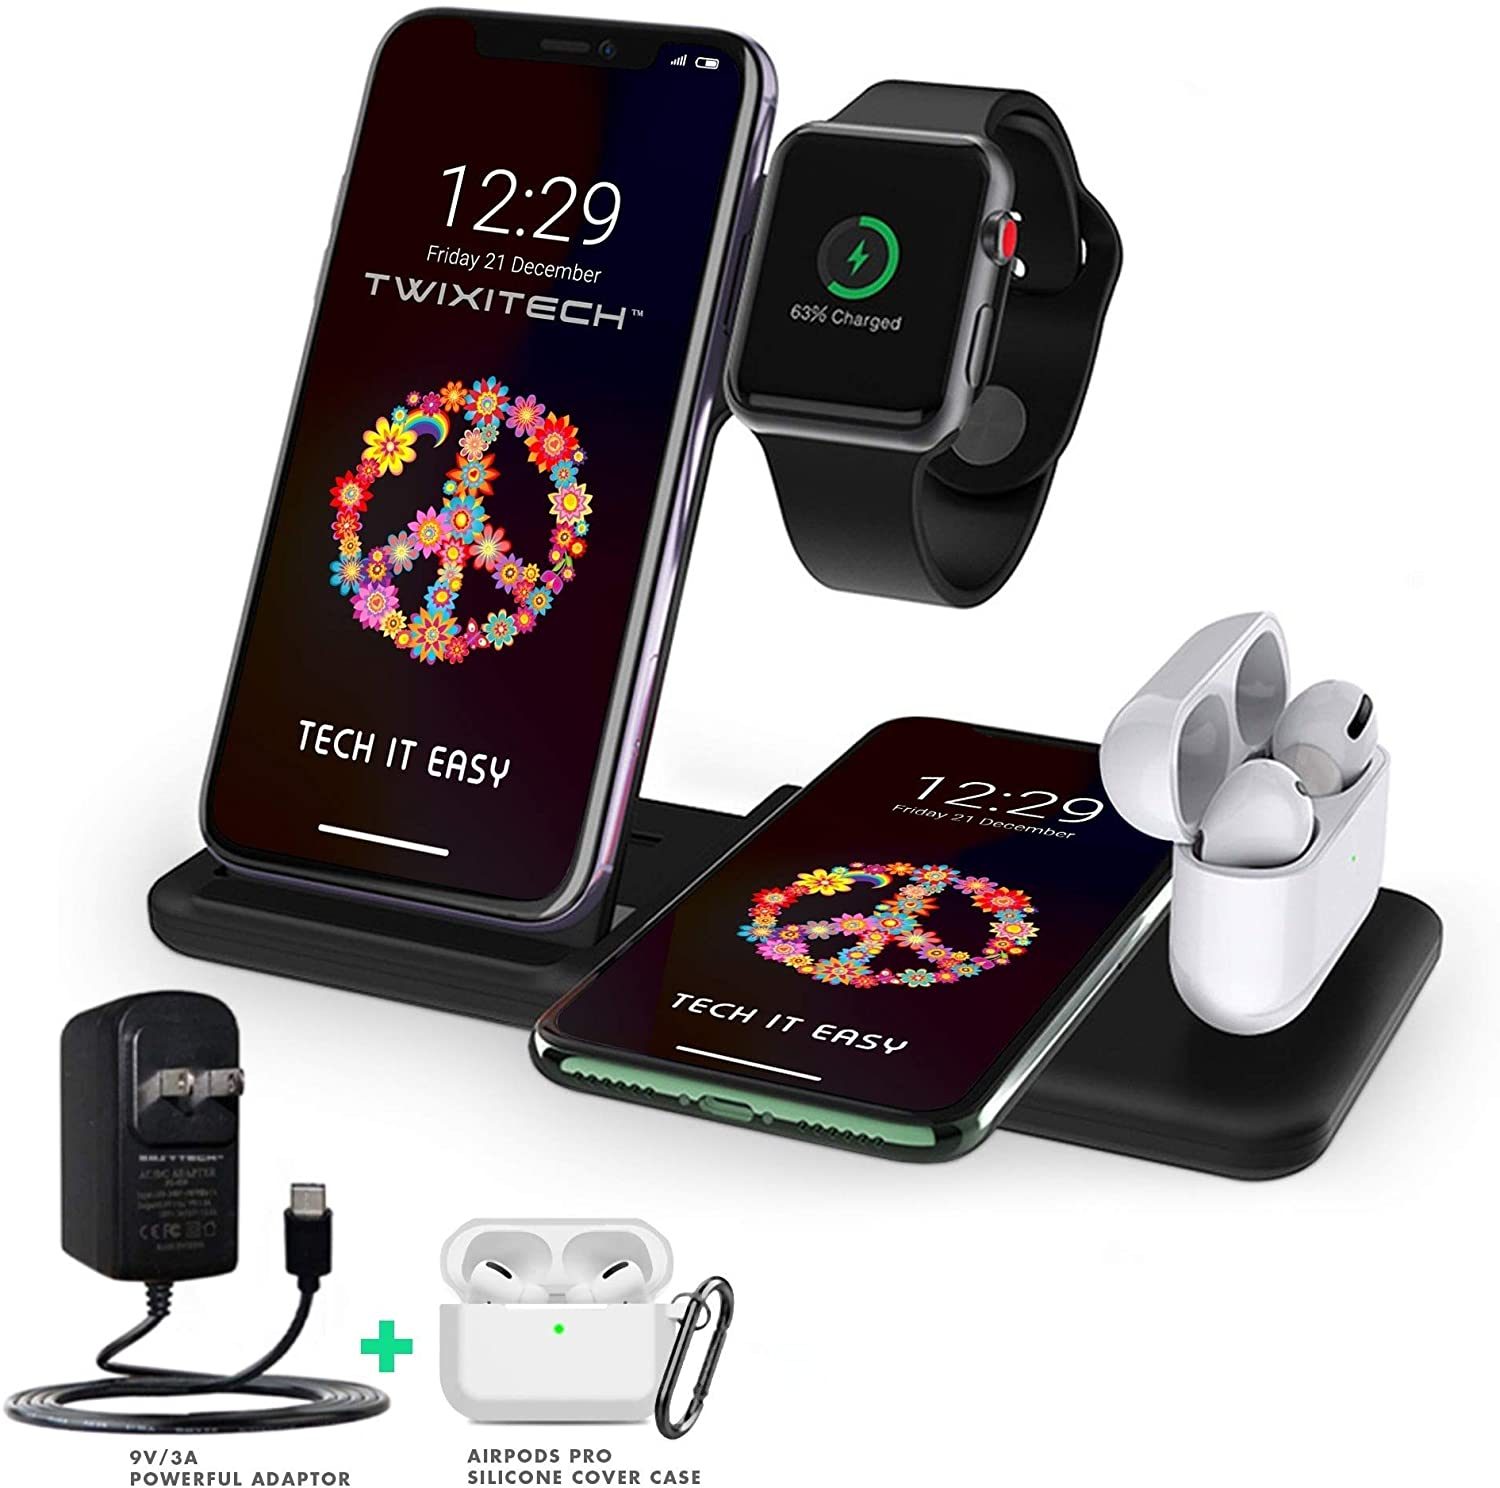 TWIXITECH Wireless Charger 4 in 1 Charging Station for Apple products, iPhone, Apple Watch, Airpods -Android + iPhone Charging Pad-15W Qi Fast Charging -BONUS- 9V/3A Powerful Adaptor+Airpods Pro Cover